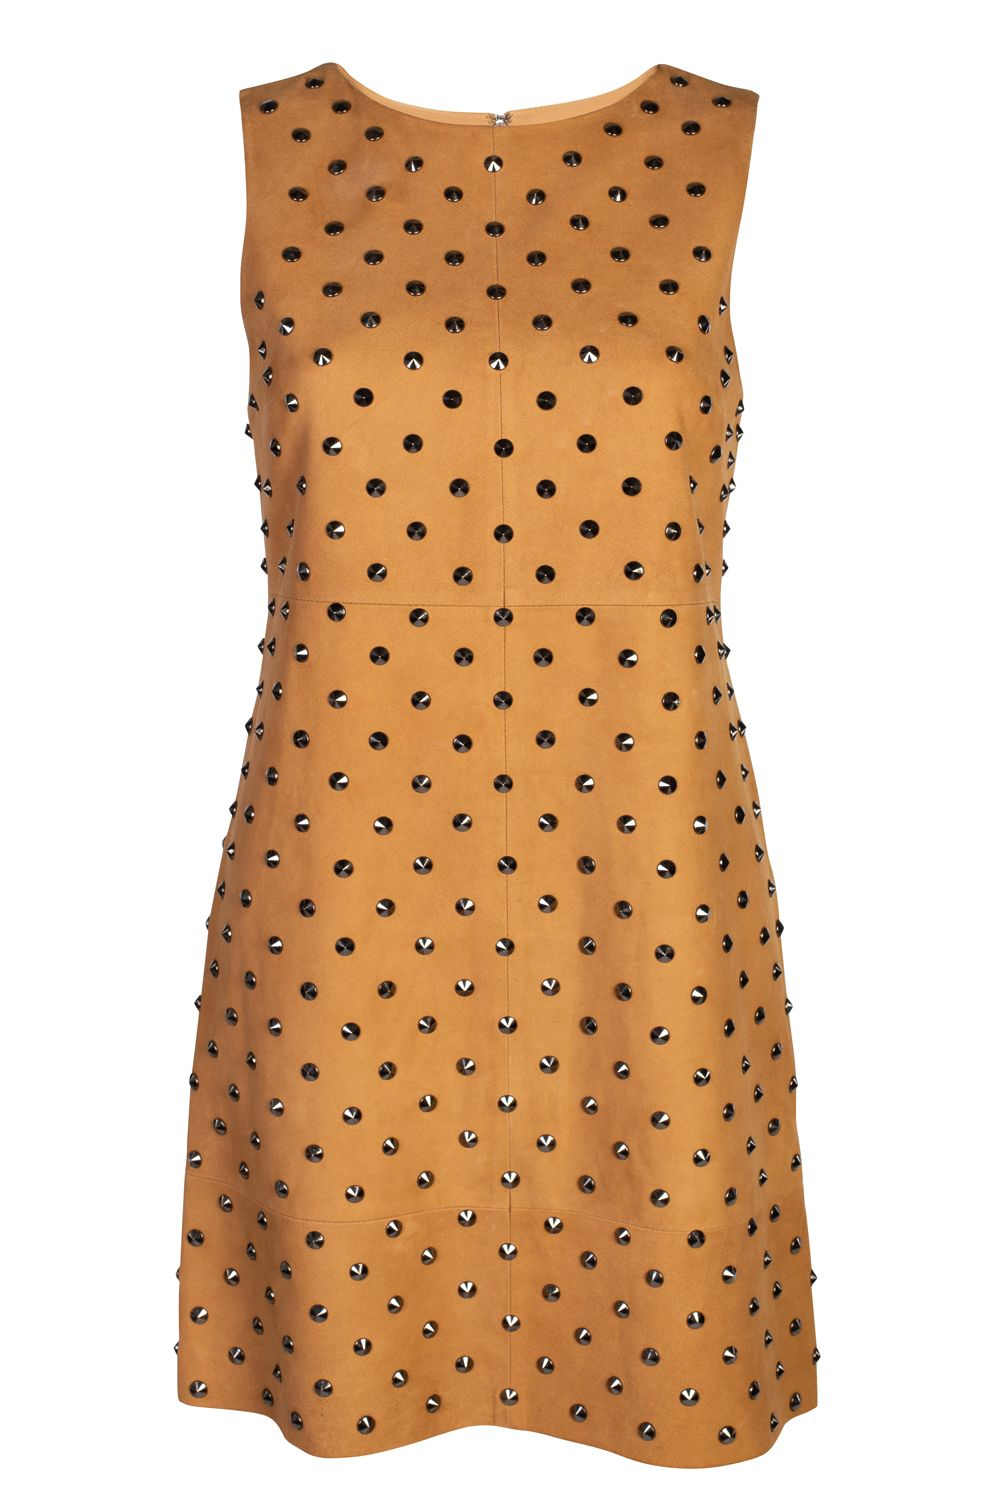 Alice + Olivia Clyde Studded Suede Dress 5 Preview Images